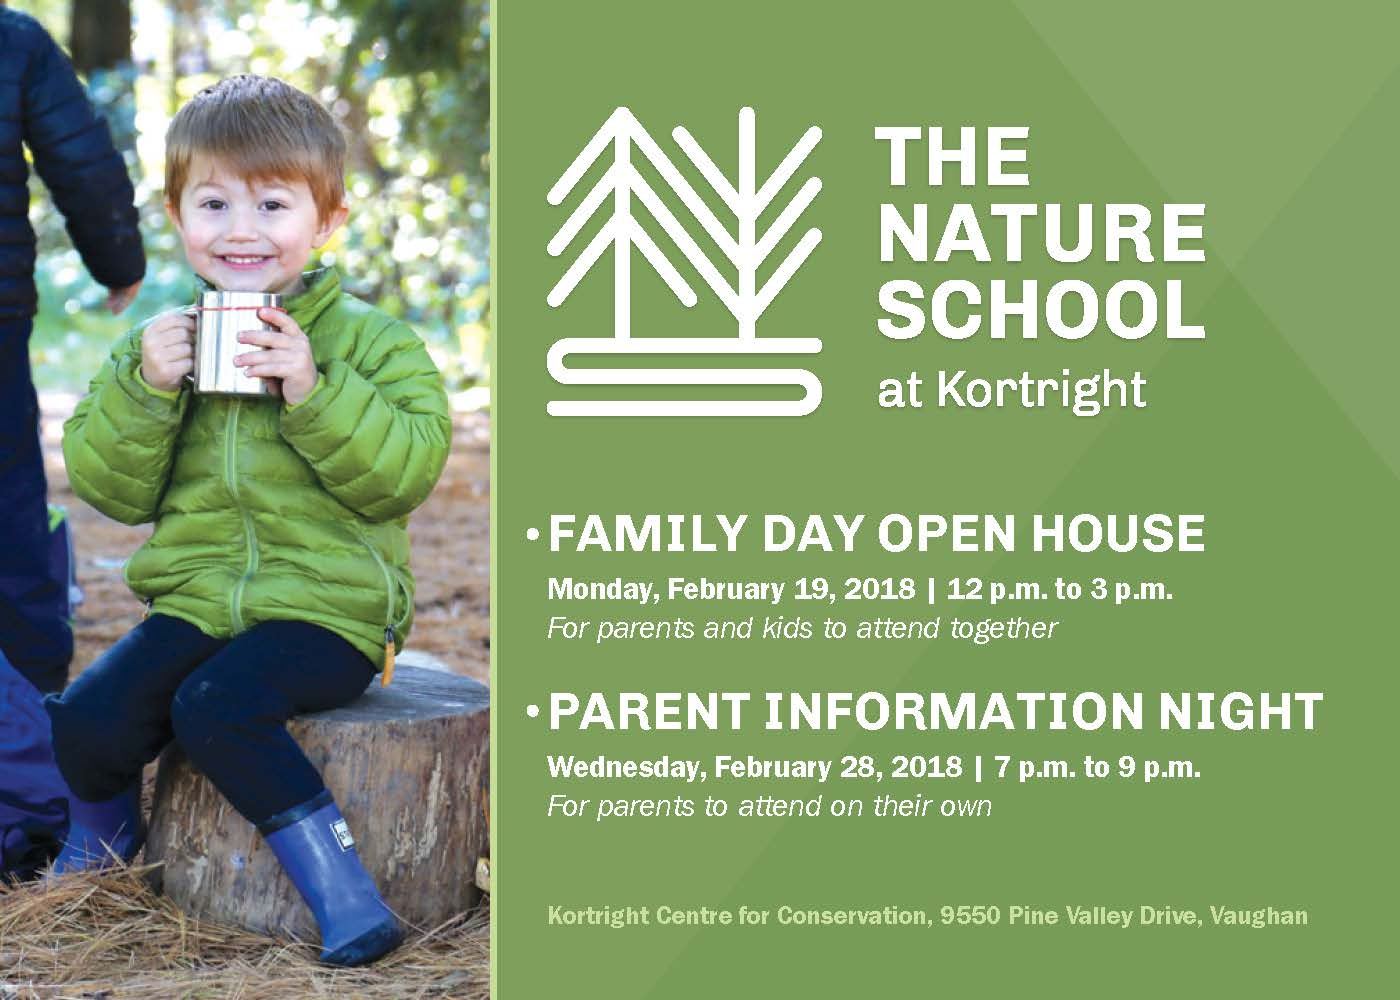 The Nature School at Kortright open houses